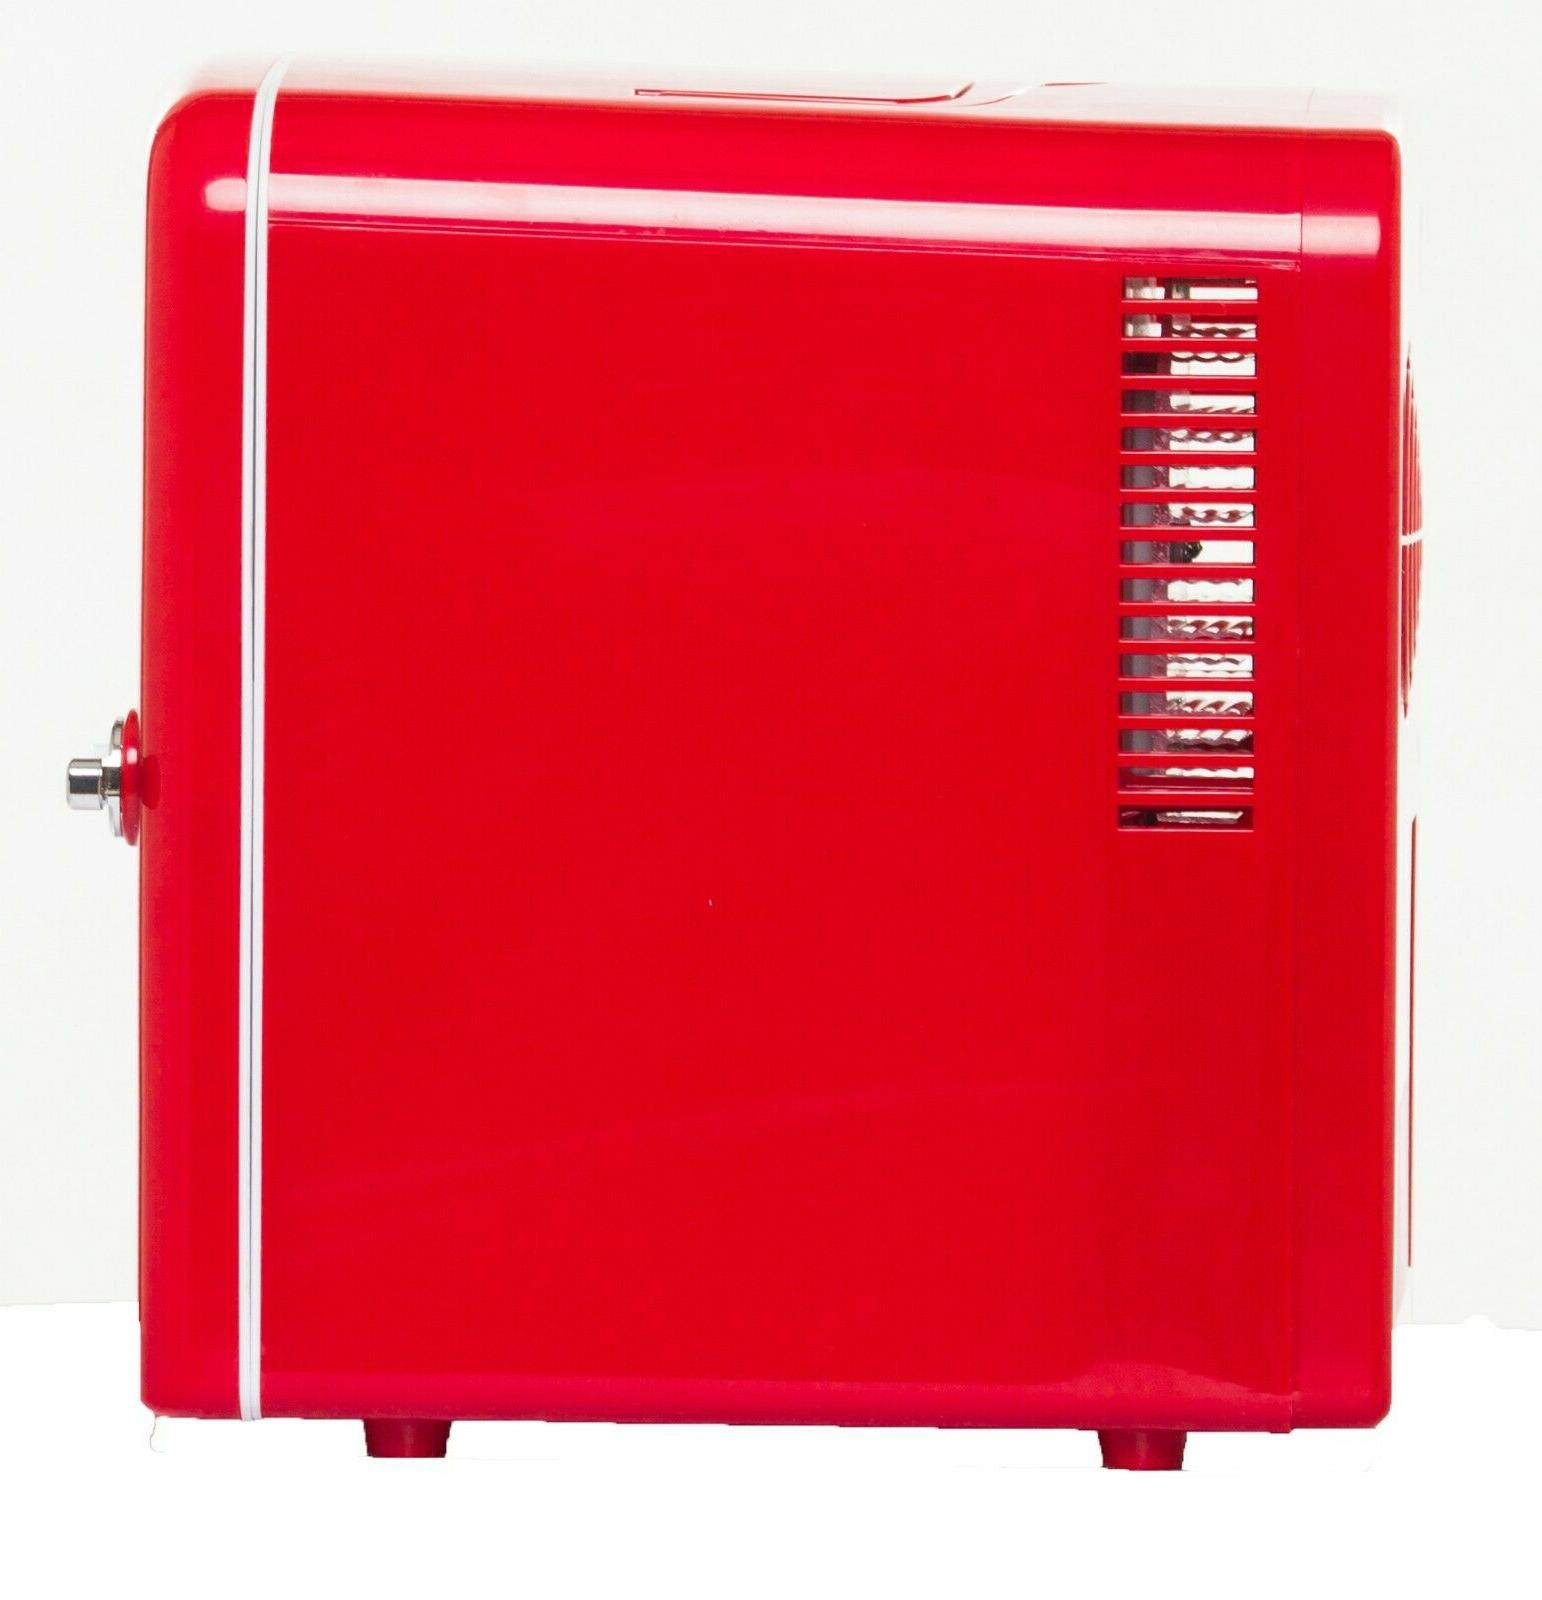 Frigidaire Retro 6 Mini Fridge Red Home